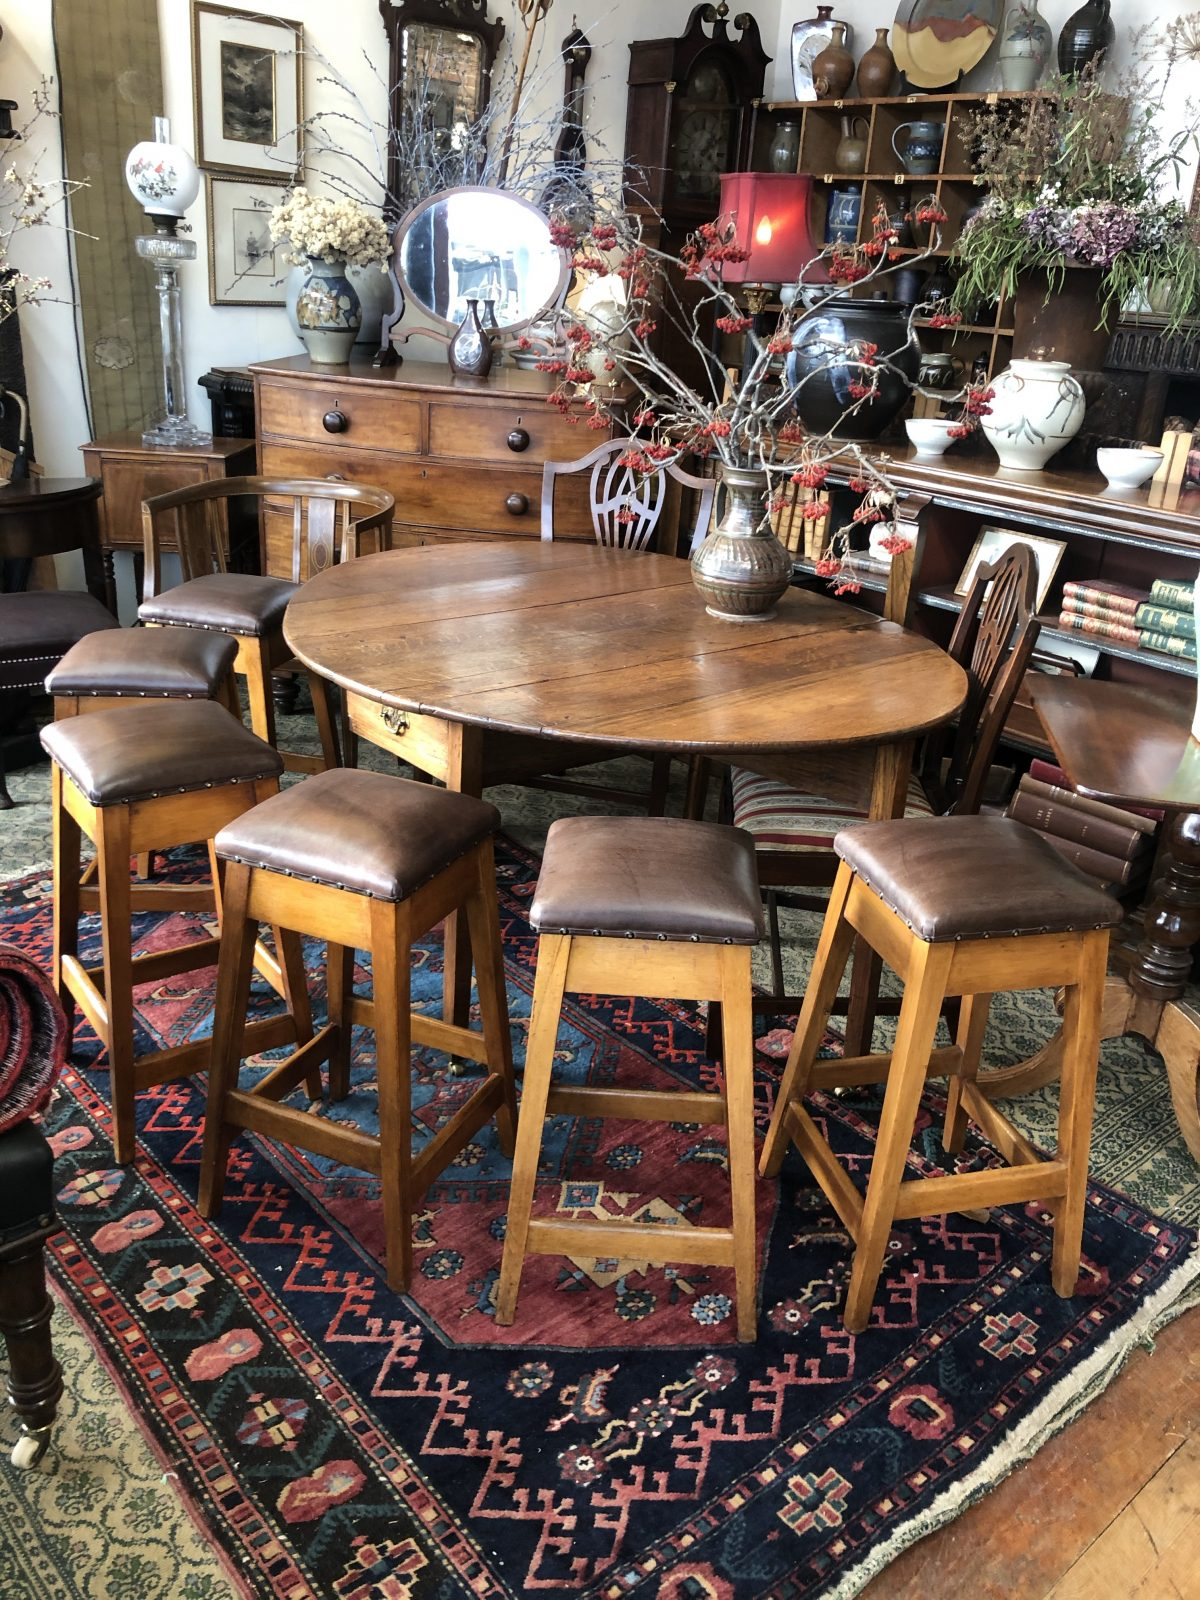 171. Leather Topped Stools